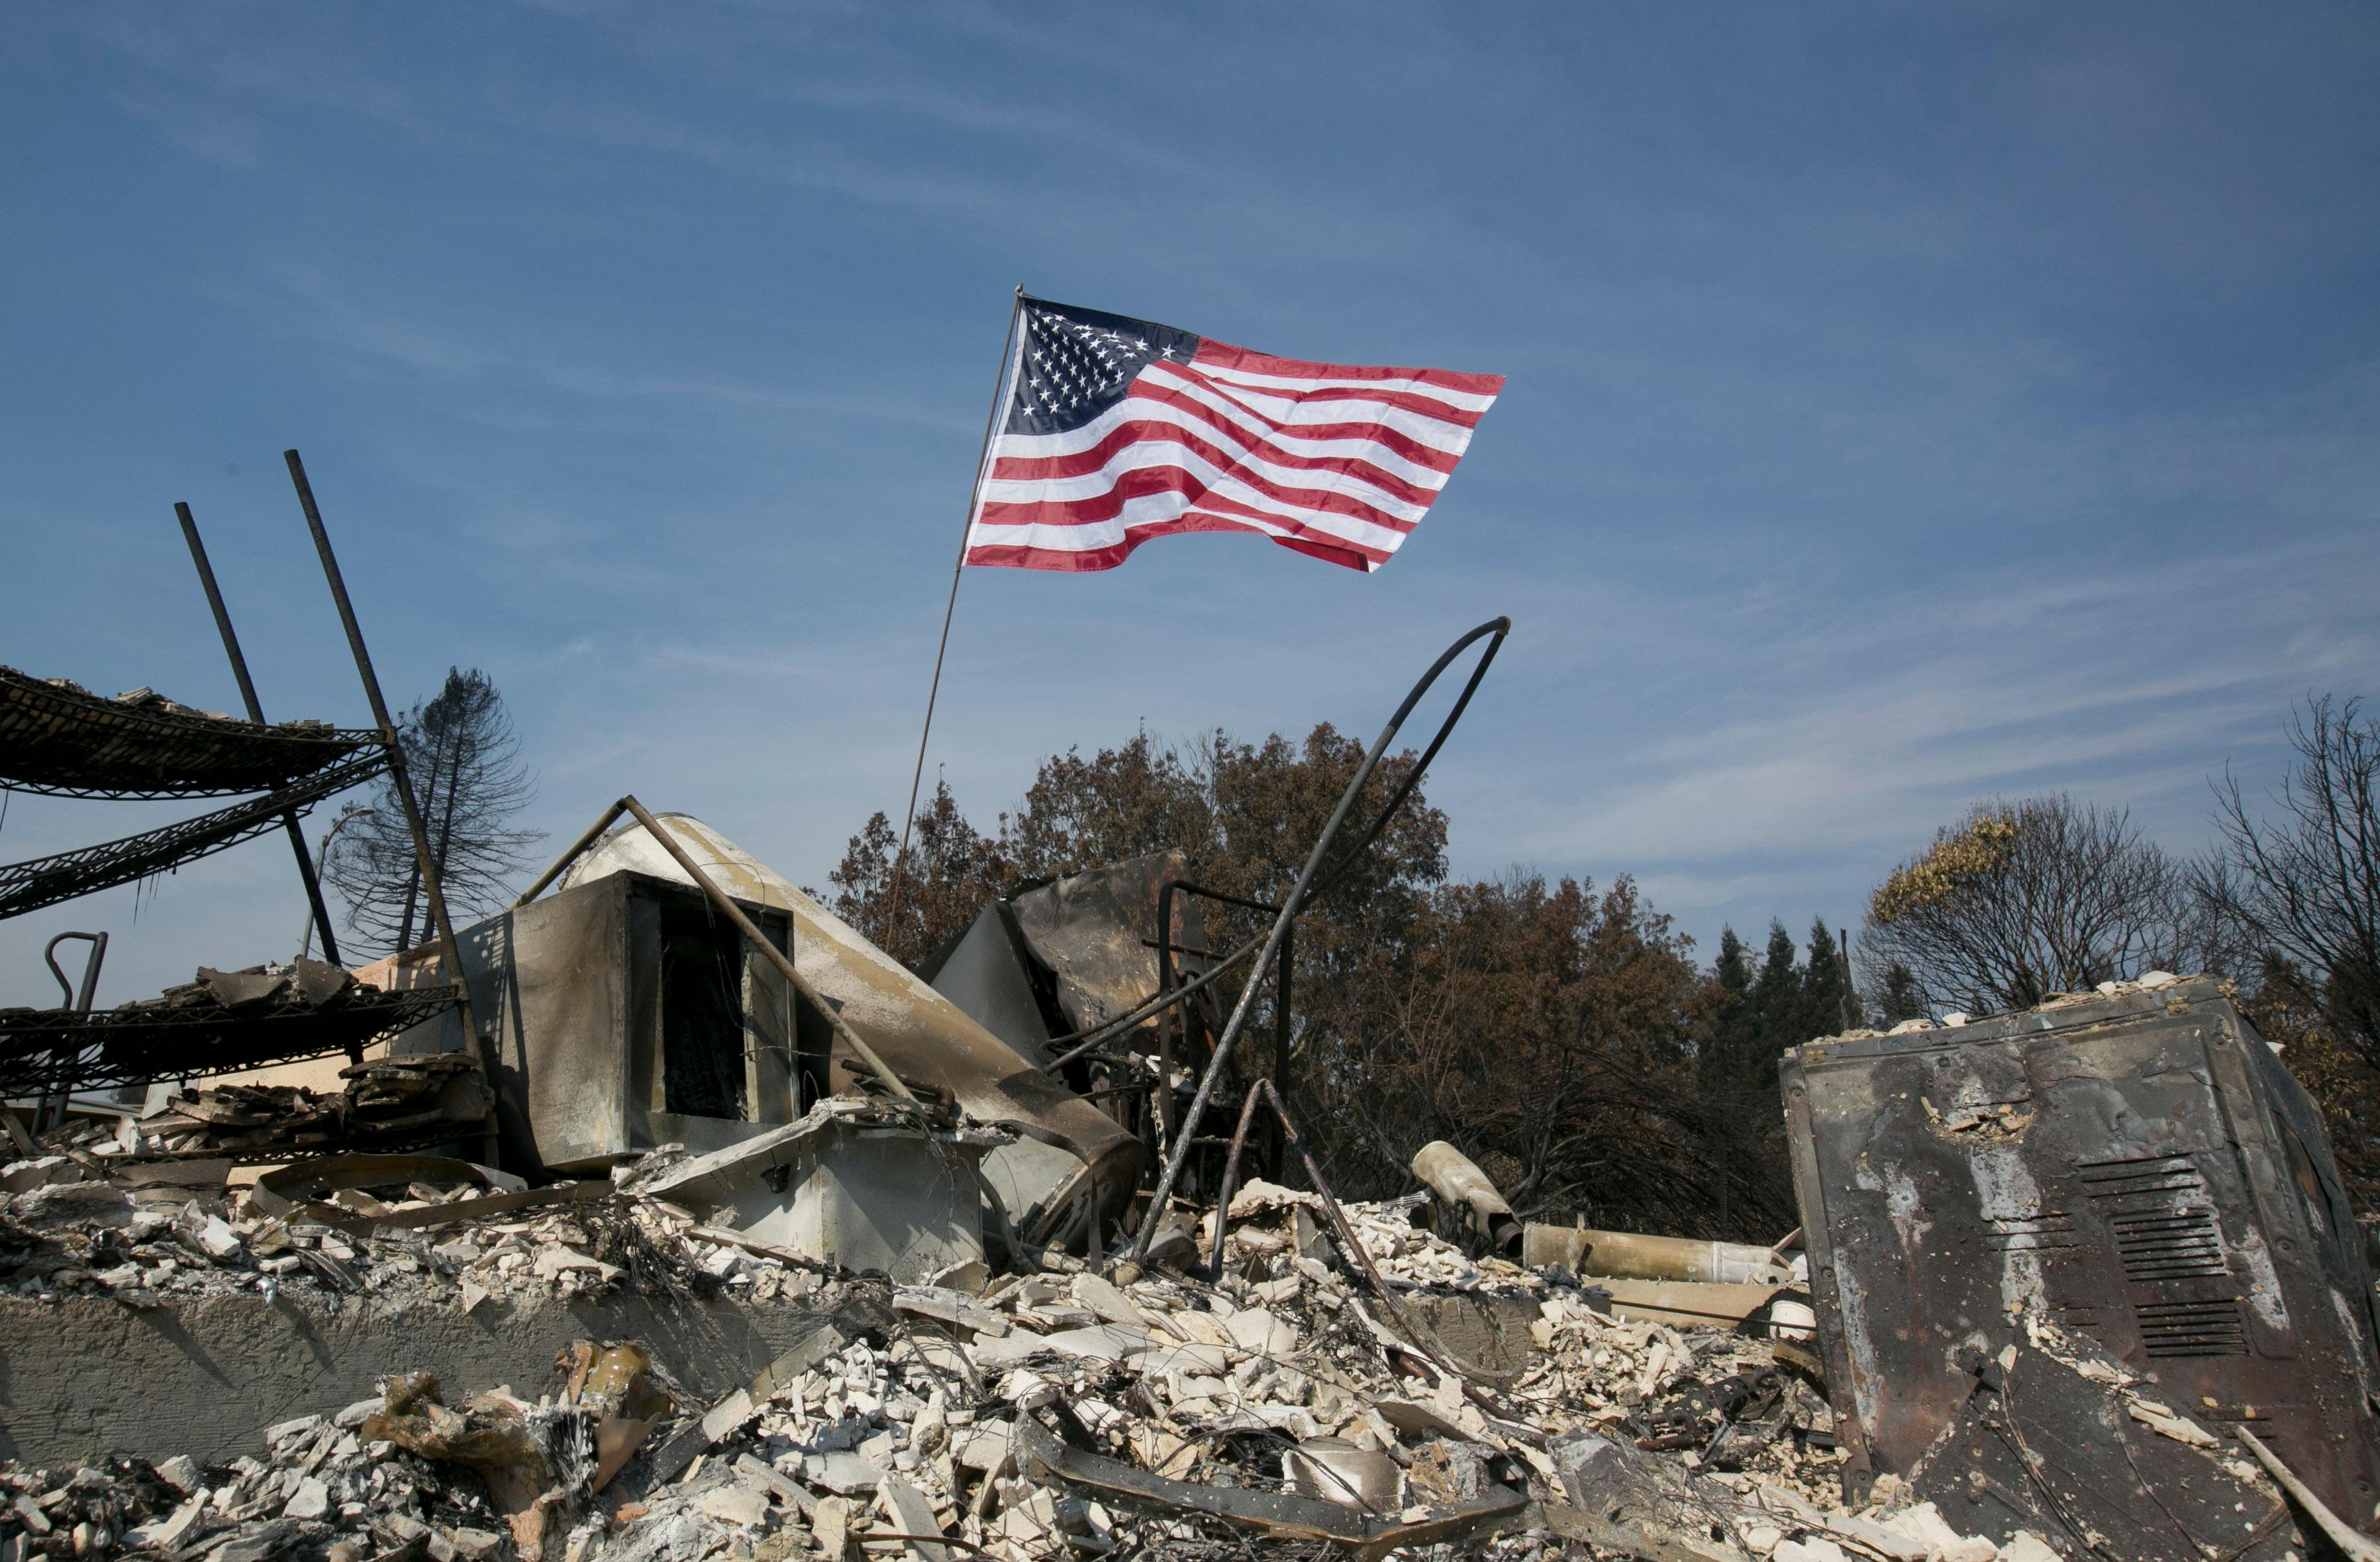 A United States flag flies over the charred remains of a house in the Coffey Park area of Santa Rosa, Calif., Monday, Oct. 16, 2017. (AP Photo/Rich Pedroncelli)